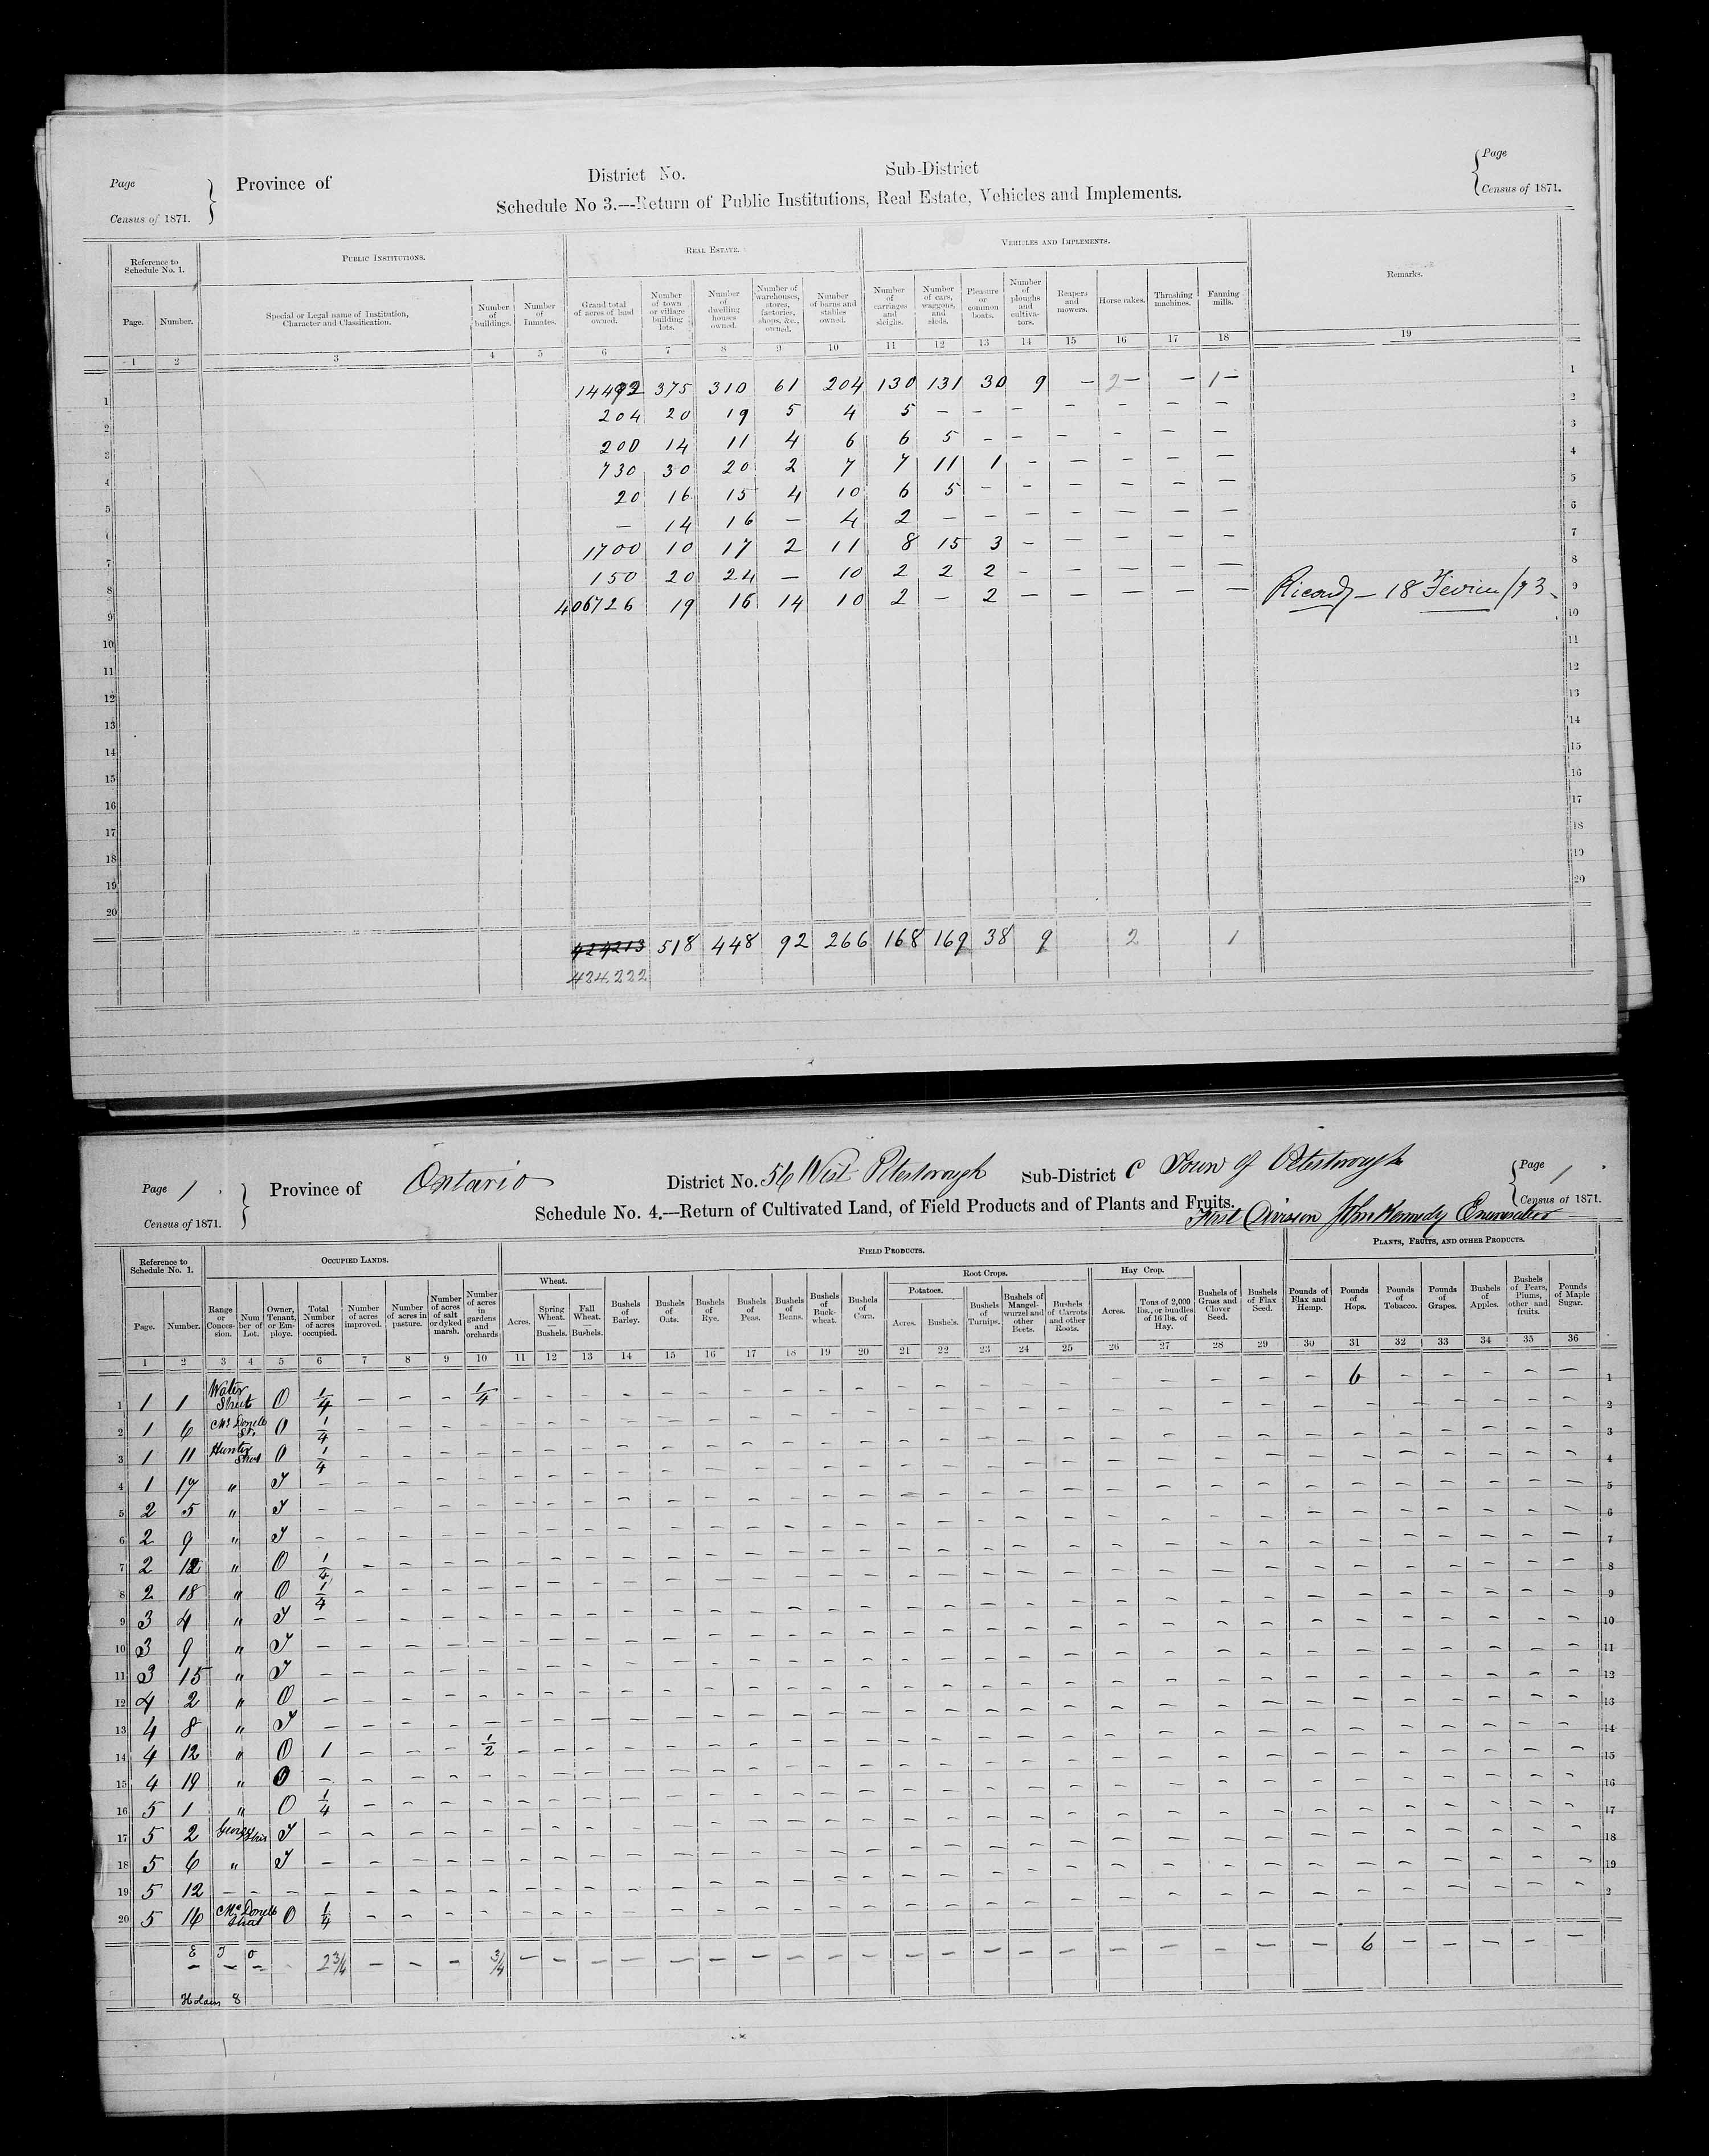 Title: Census of Canada, 1871 - Mikan Number: 142105 - Microform: c-9986